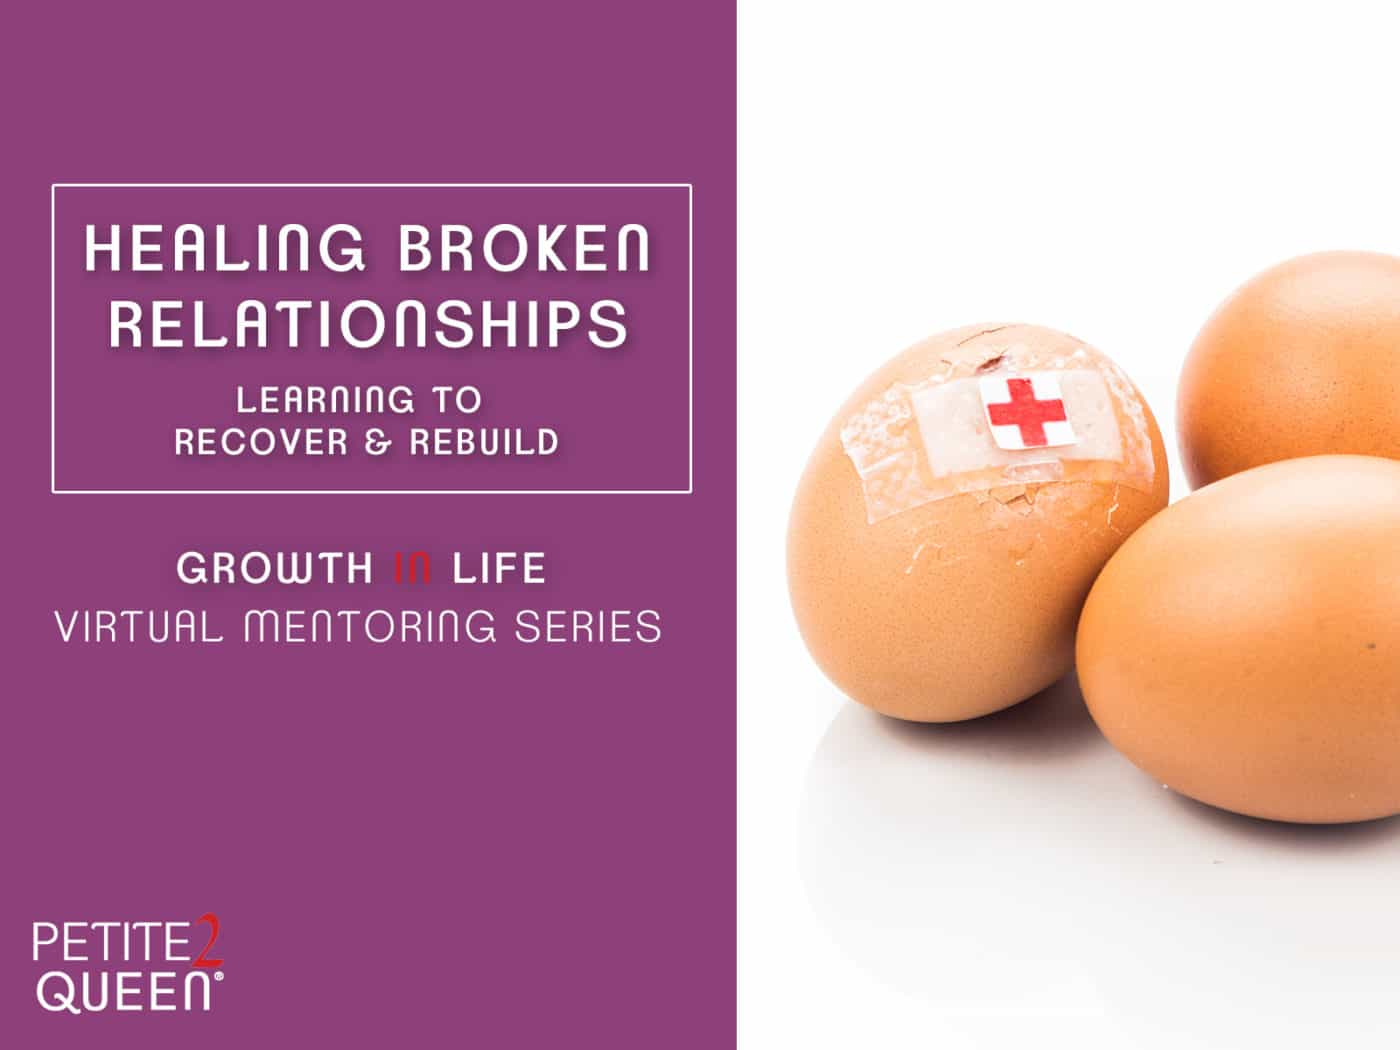 Healing Broken Relationships